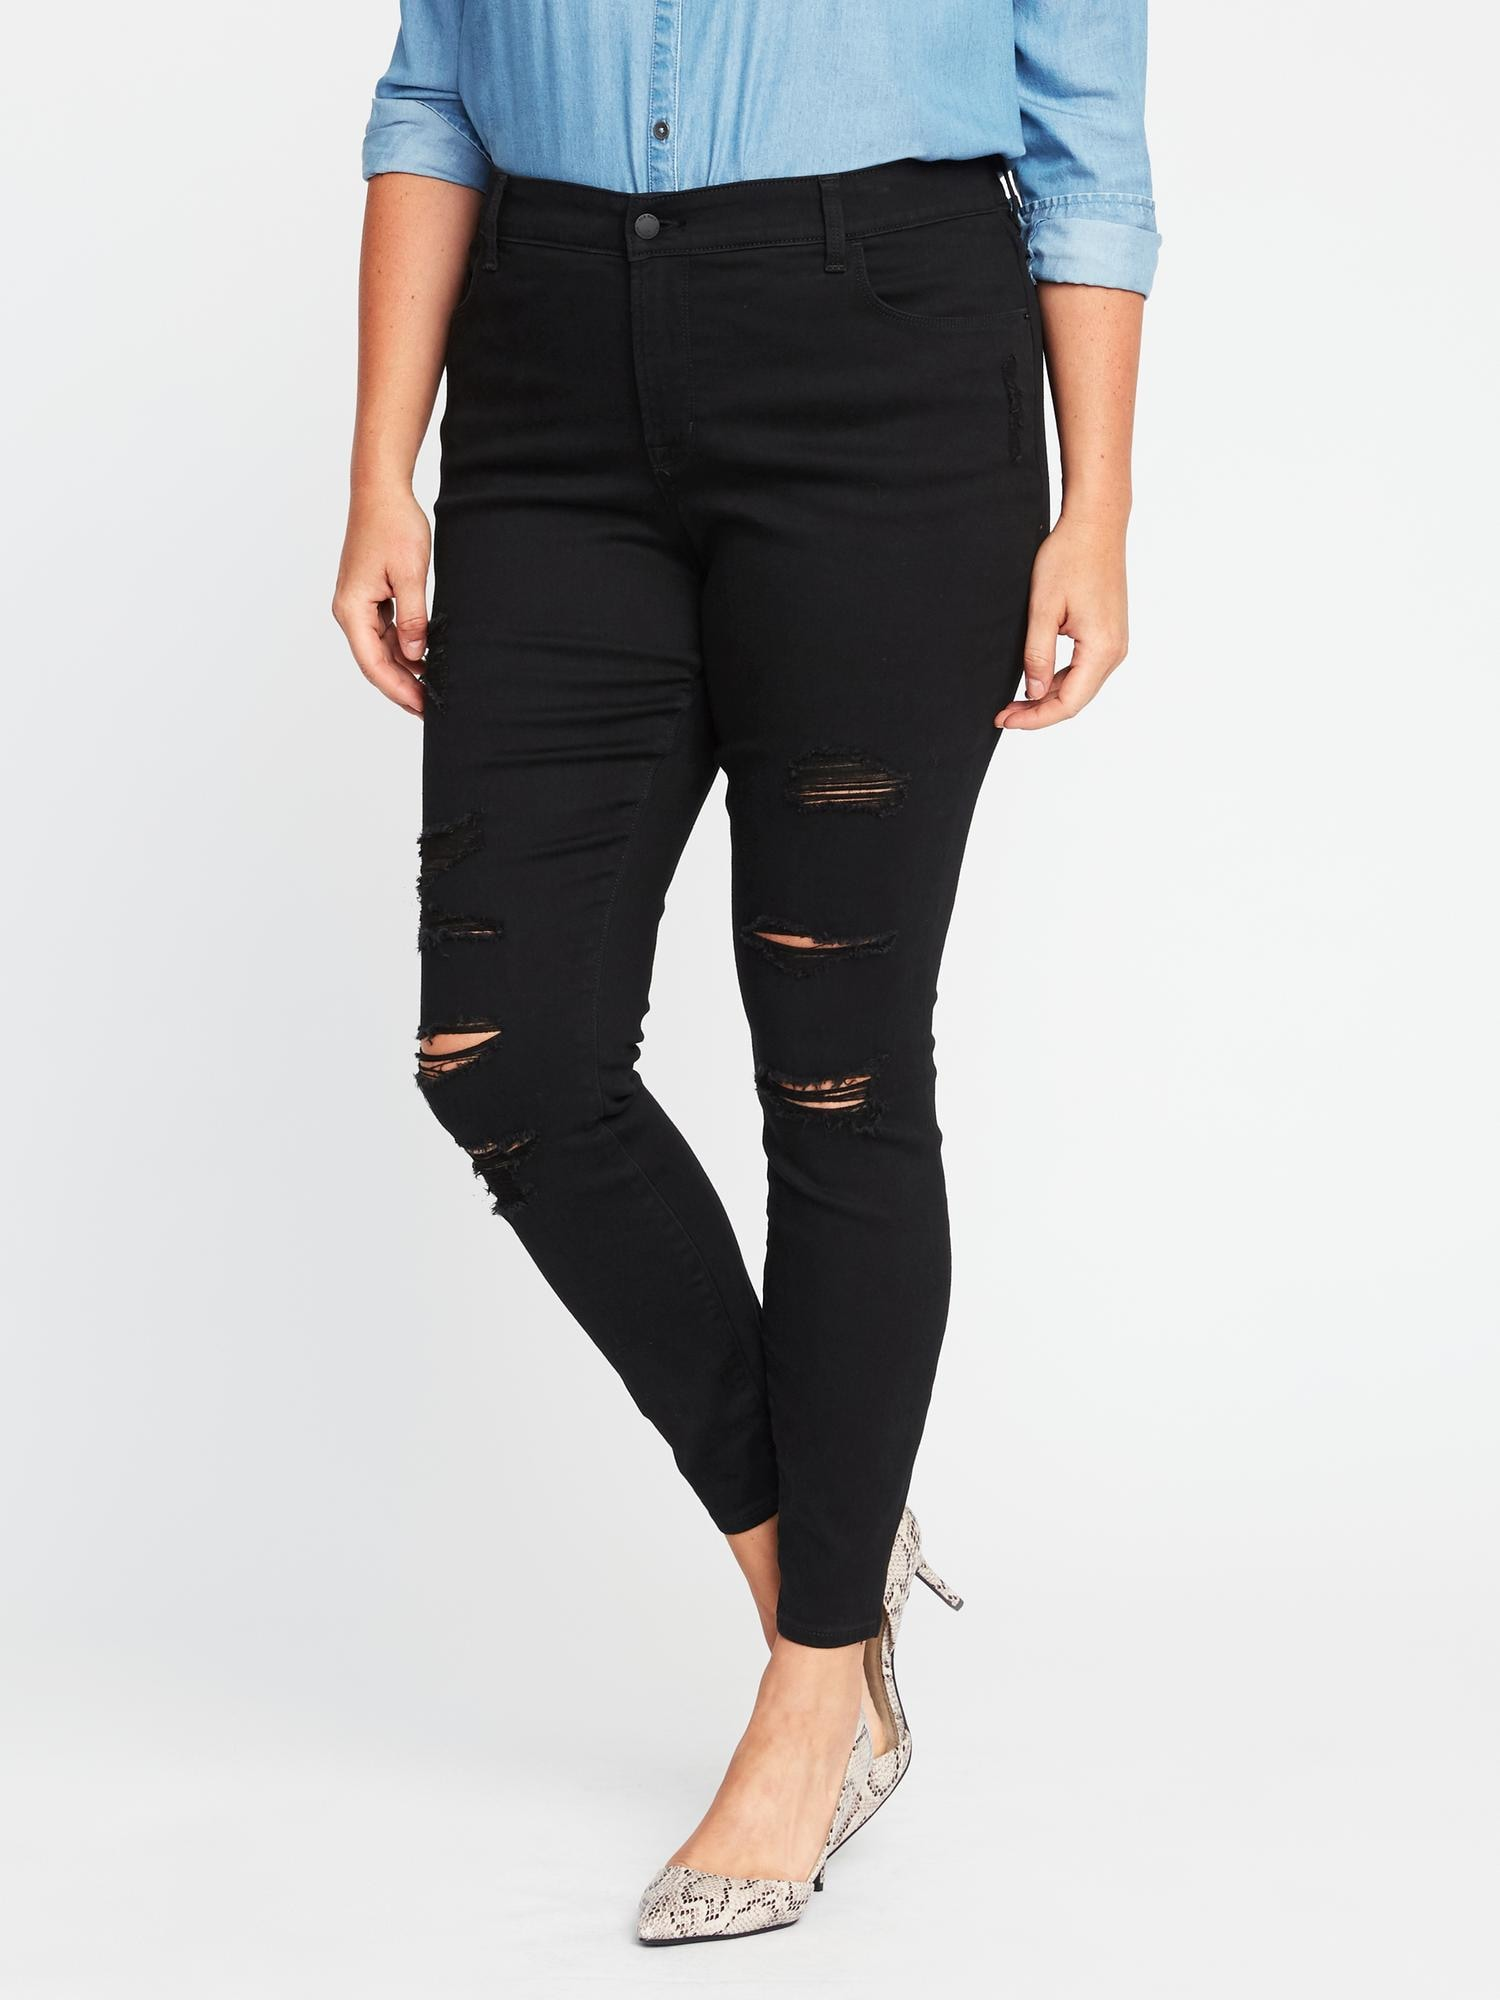 95d670d3c34c High-Rise Secret-Slim Pockets Plus-Size Rockstar Jeans